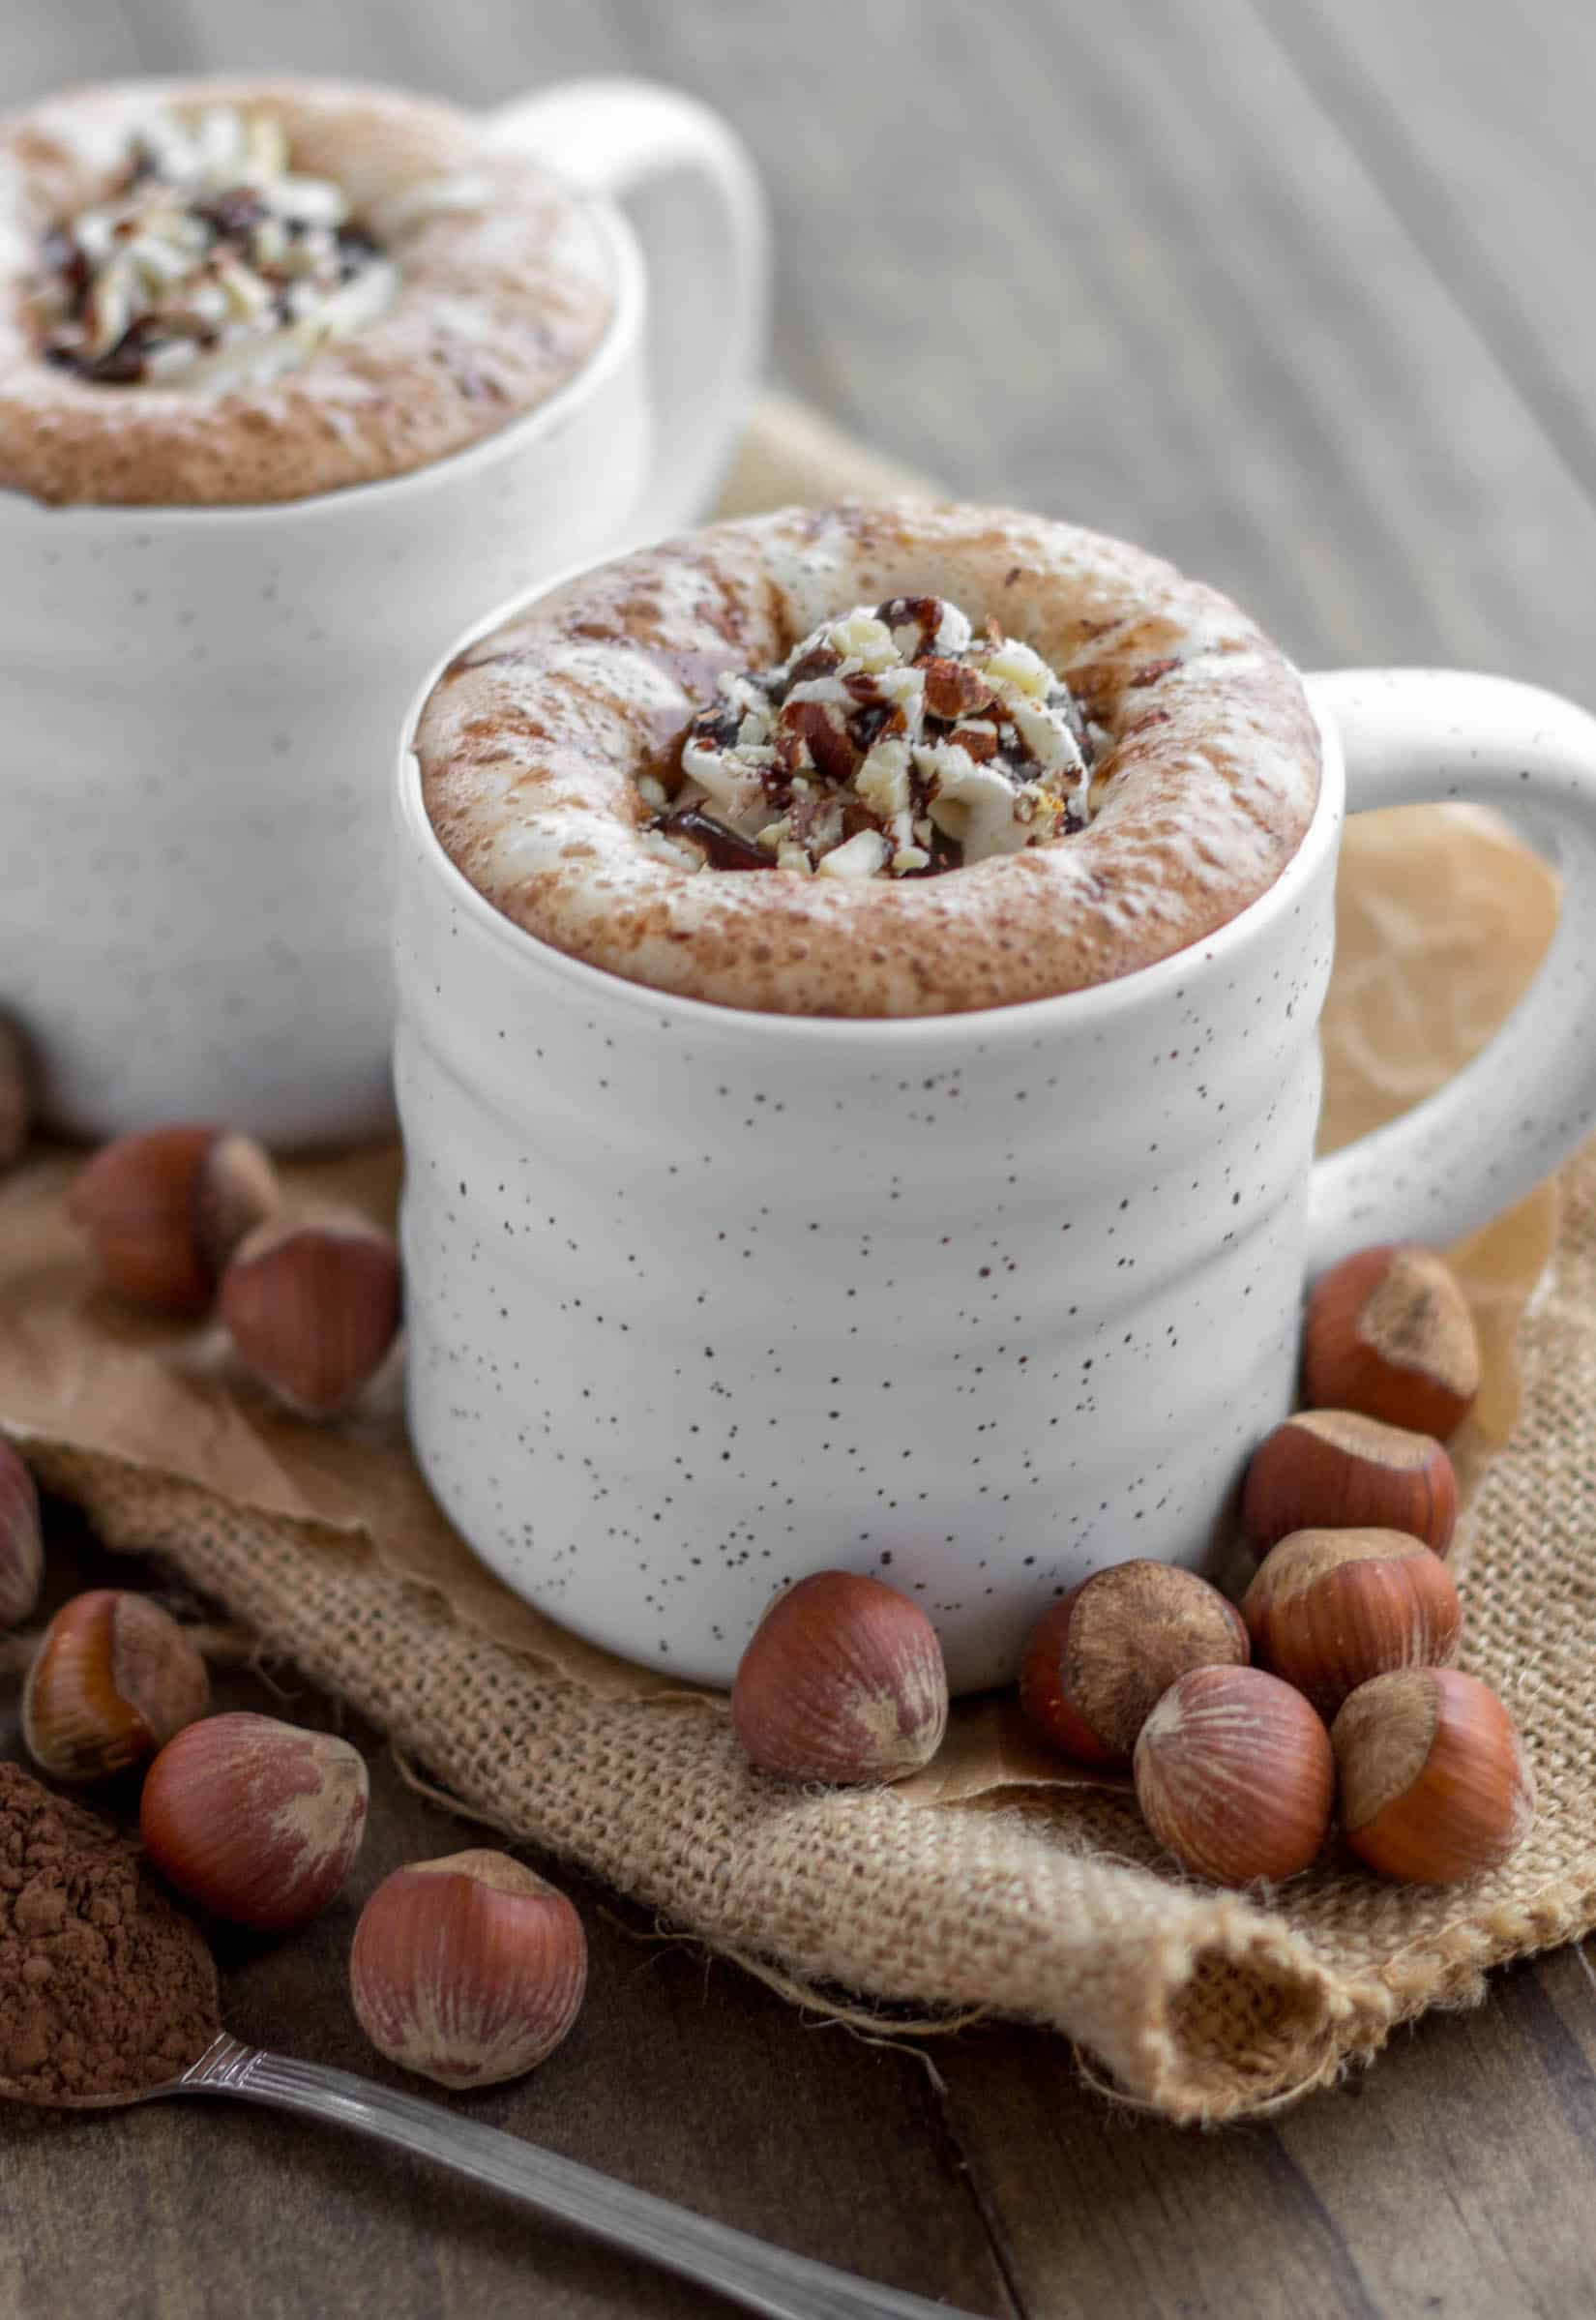 Creamy and delicious hazelnut mocha lattes made easy at home. - Hazelnut Mocha Cafe Latte